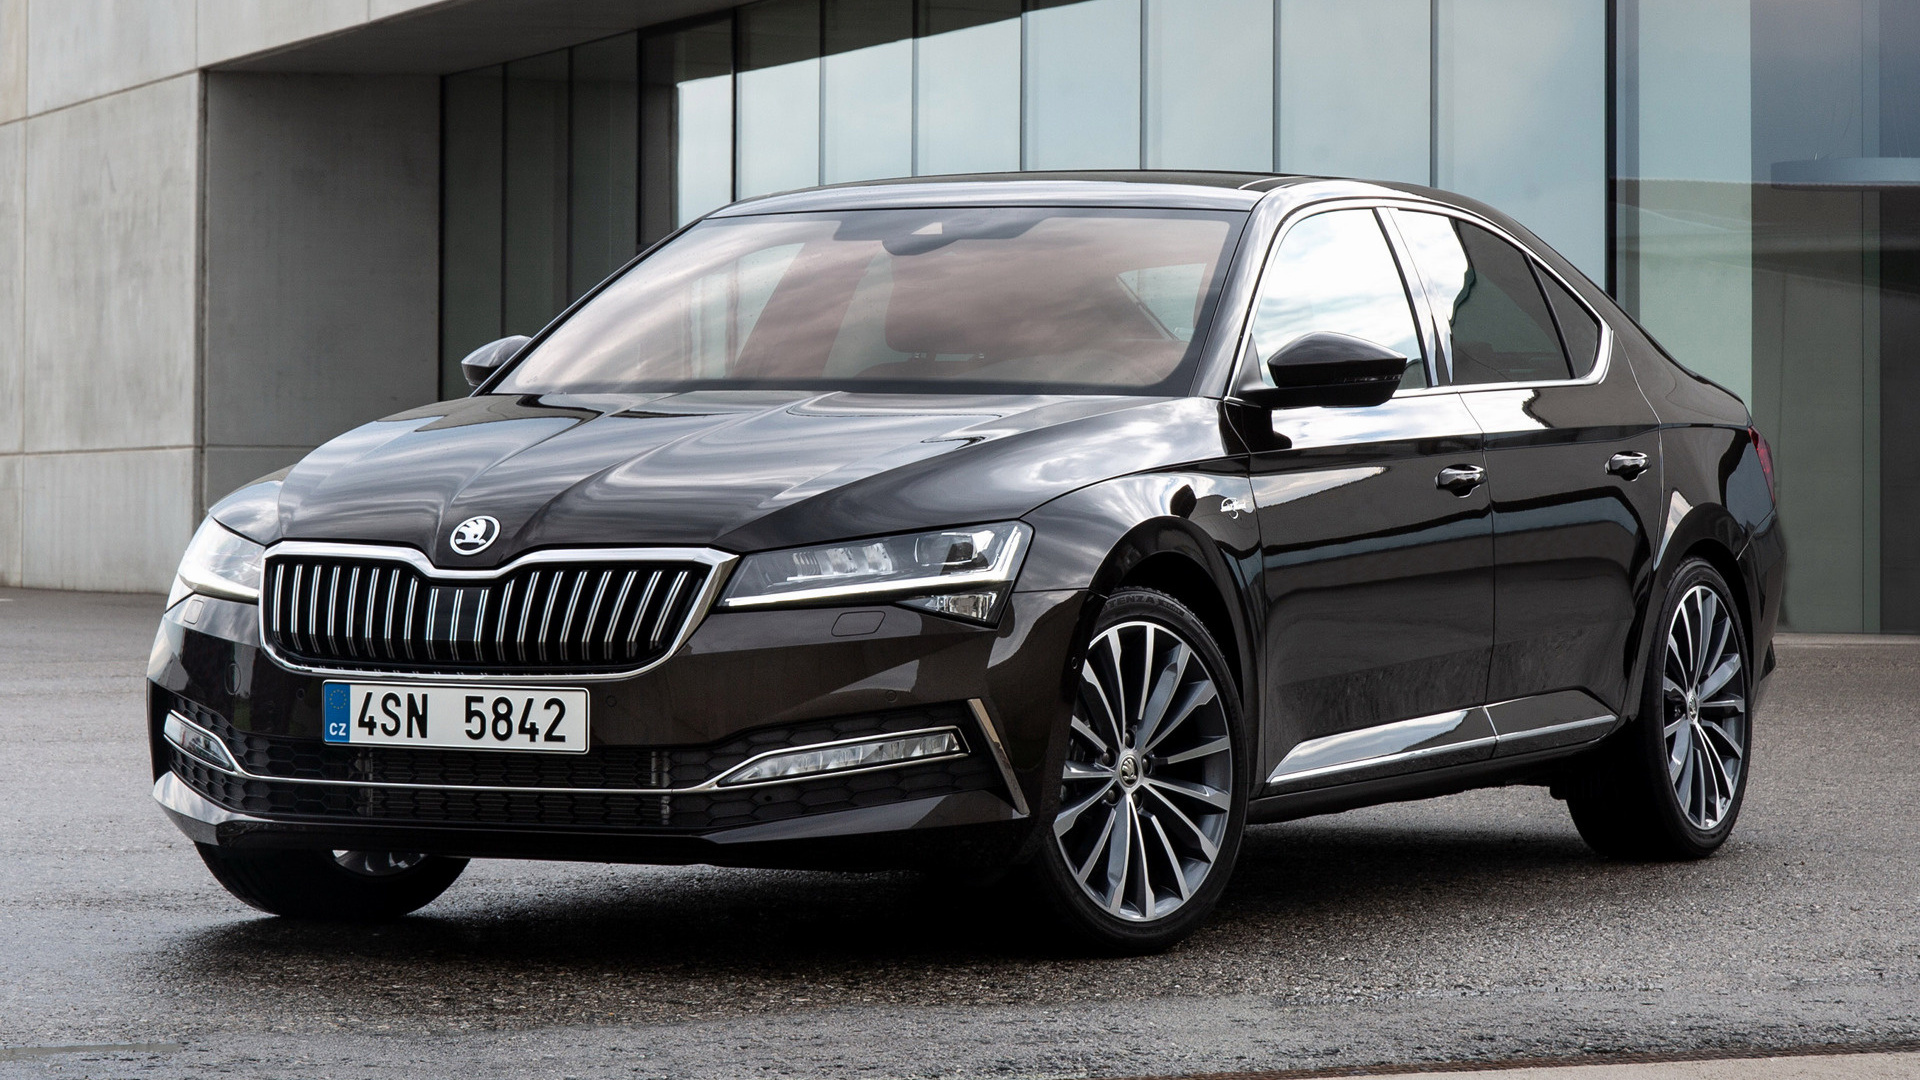 2019 Skoda Superb Laurin & Klement - Wallpapers and HD ...